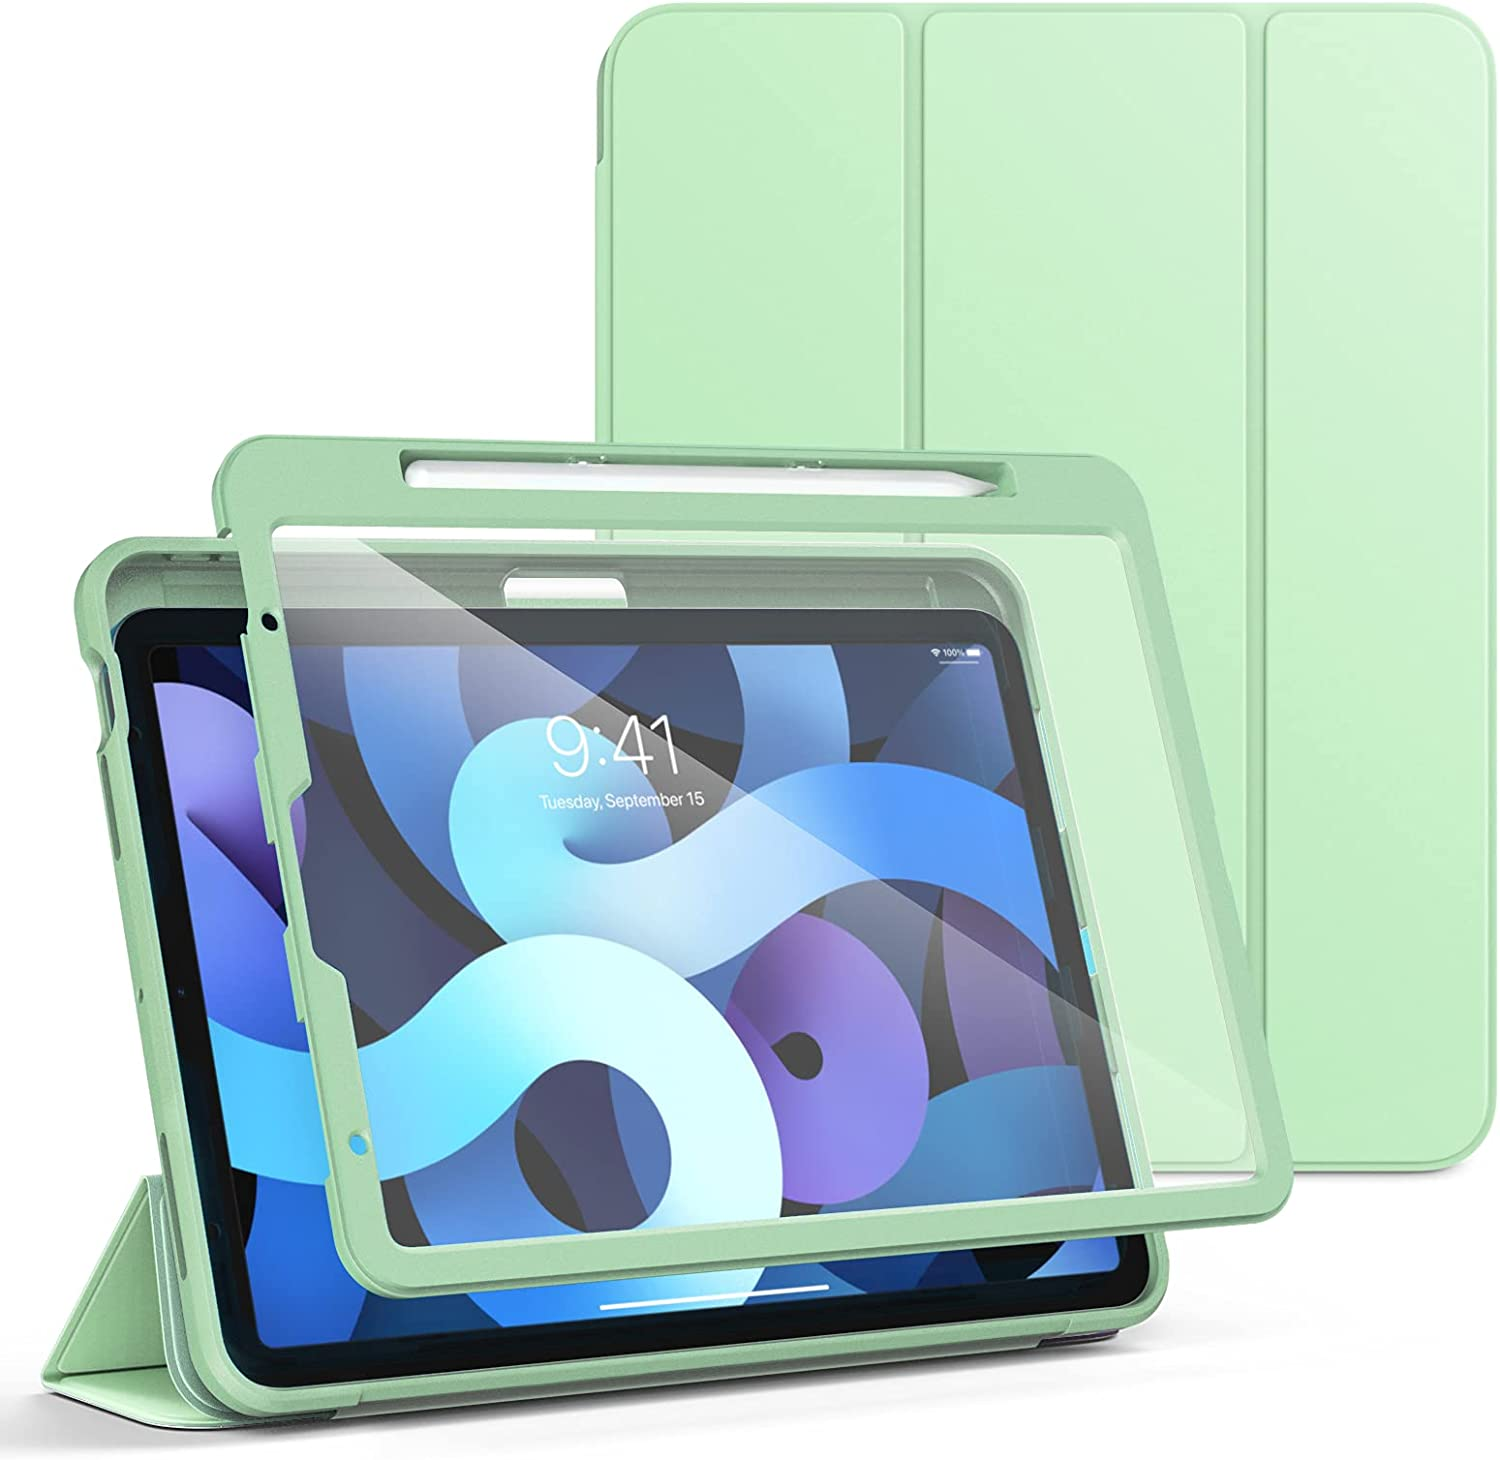 TiMOVO Case for New iPad Air 4th Generation, iPad Air 4 Case (10.9-inch, 2020), [Built-in Screen Protector] Slim Trifold Folio Cover with Apple Pencil Holder & Auto Sleep/Wake - Green